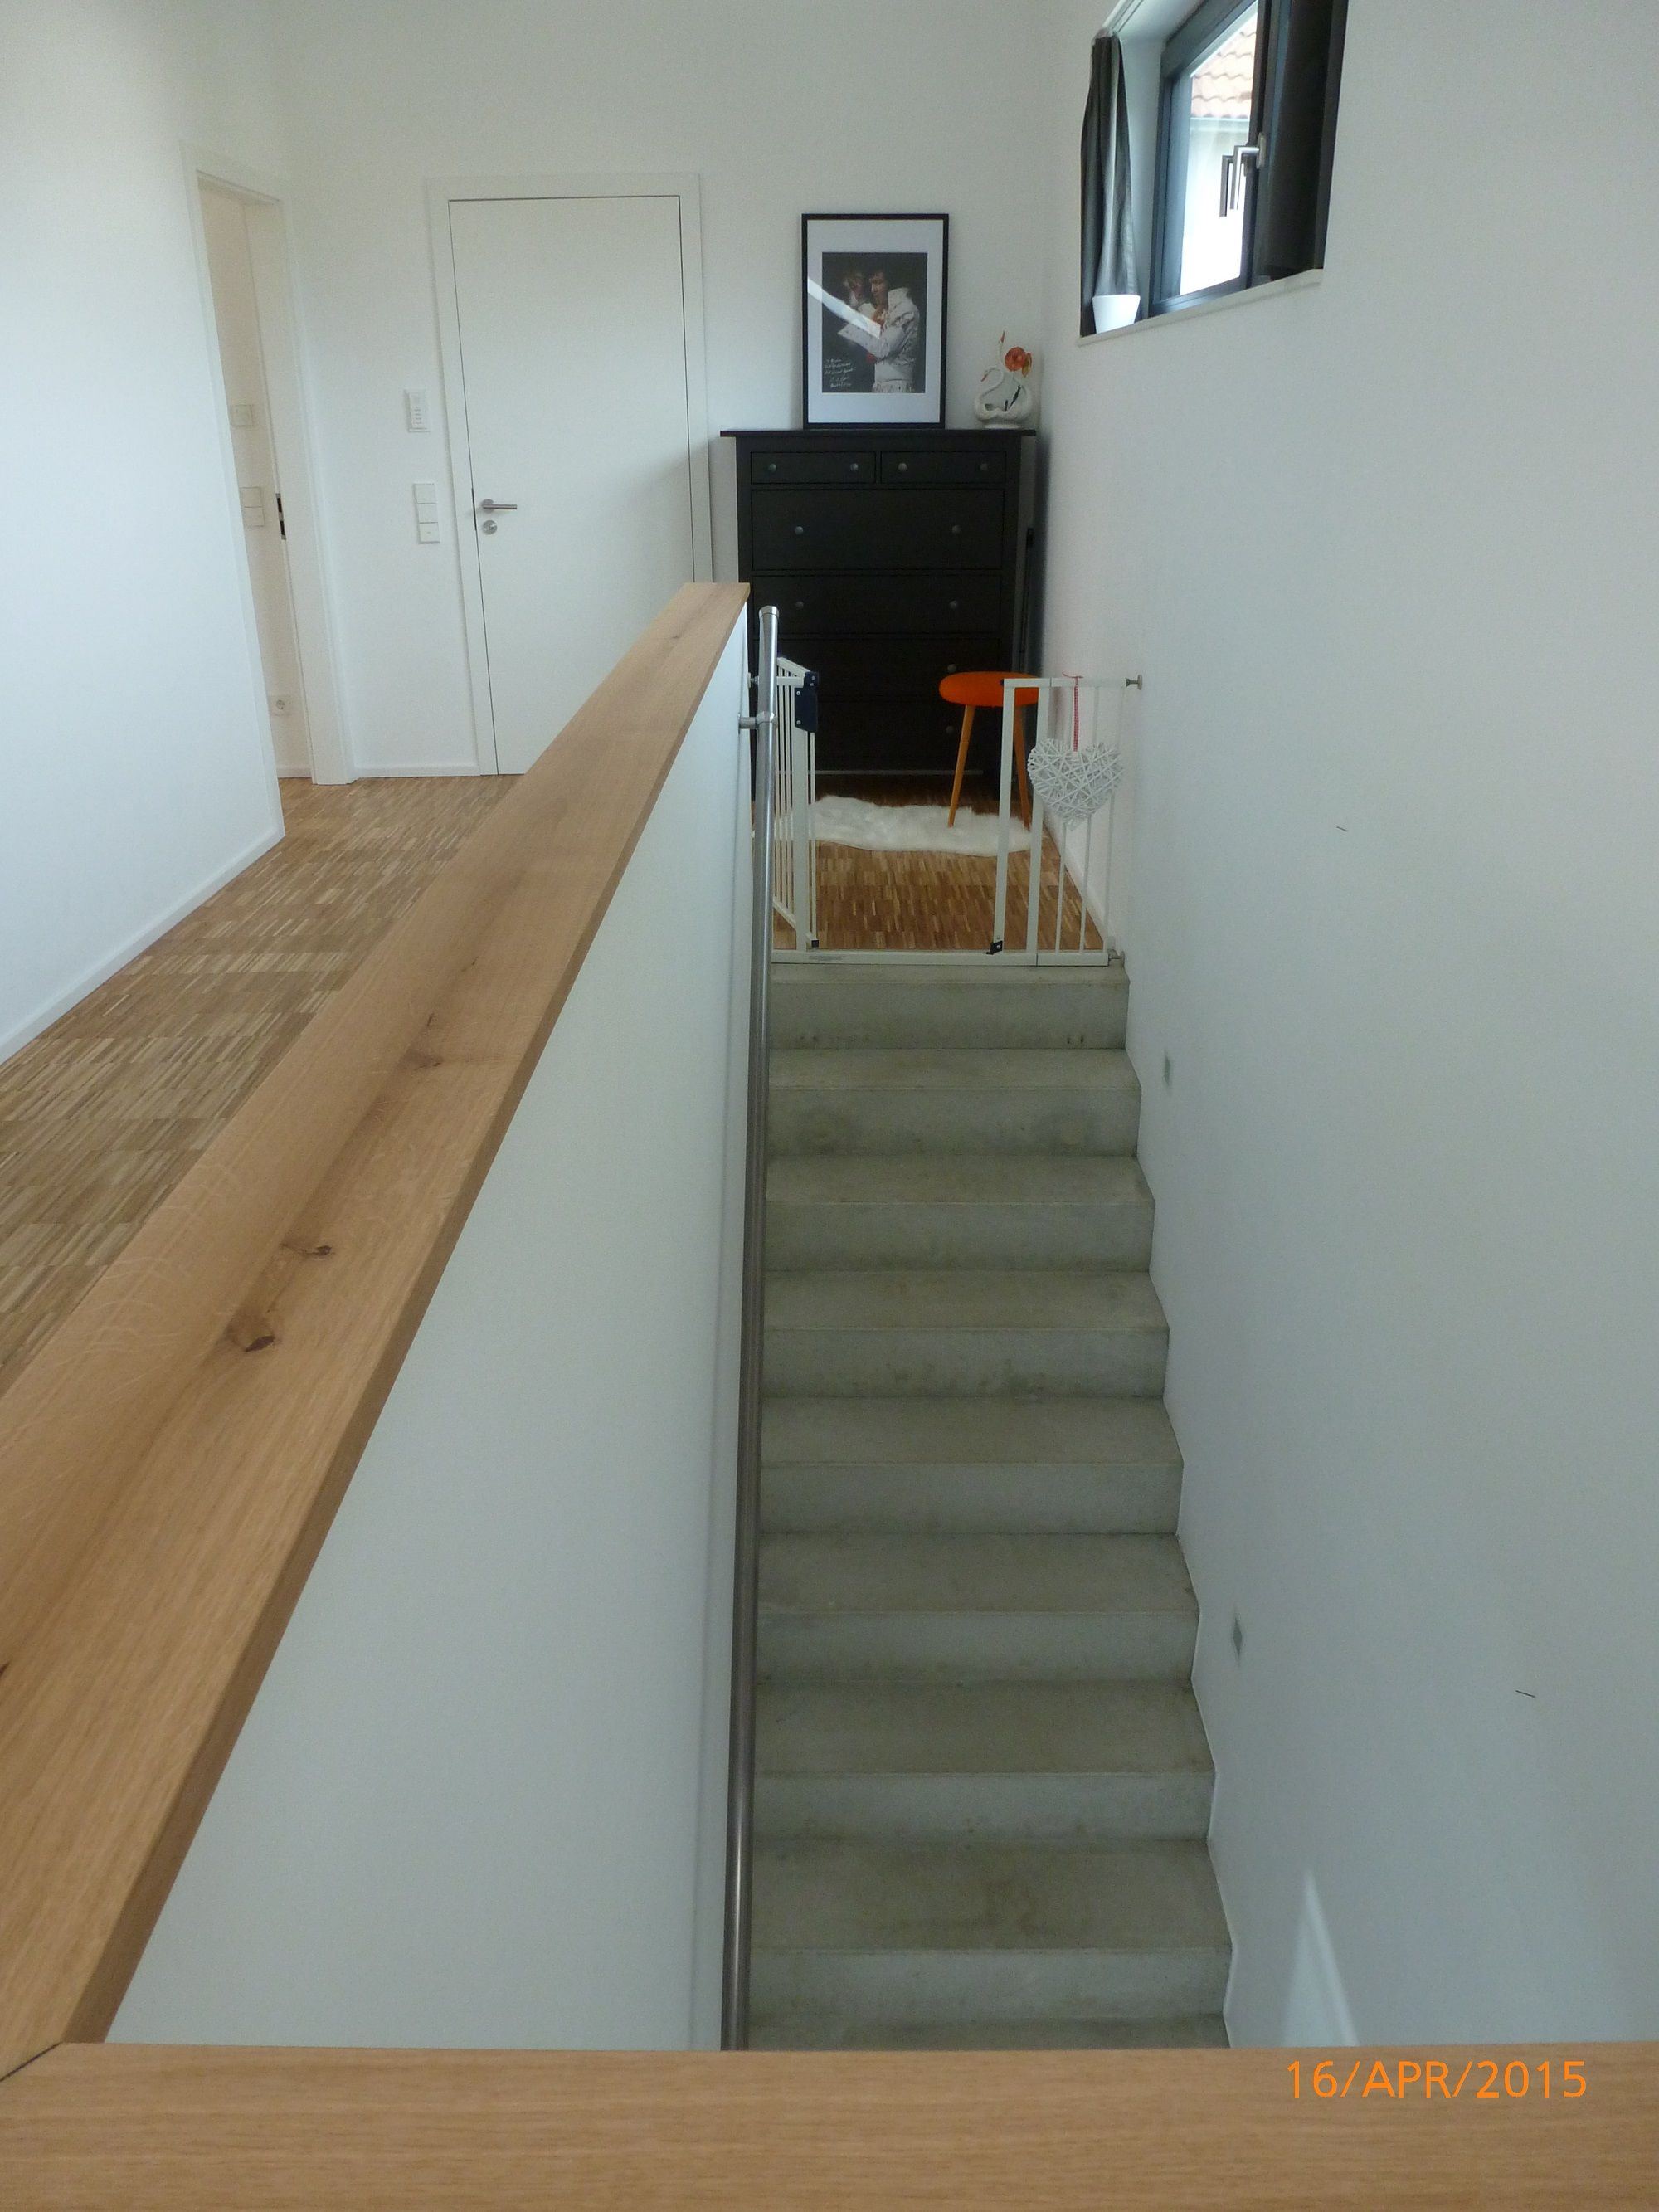 Betontreppe Innen Imprägnieren Betontreppe In 2019 Stairs Stair Banister Home Renovation Und